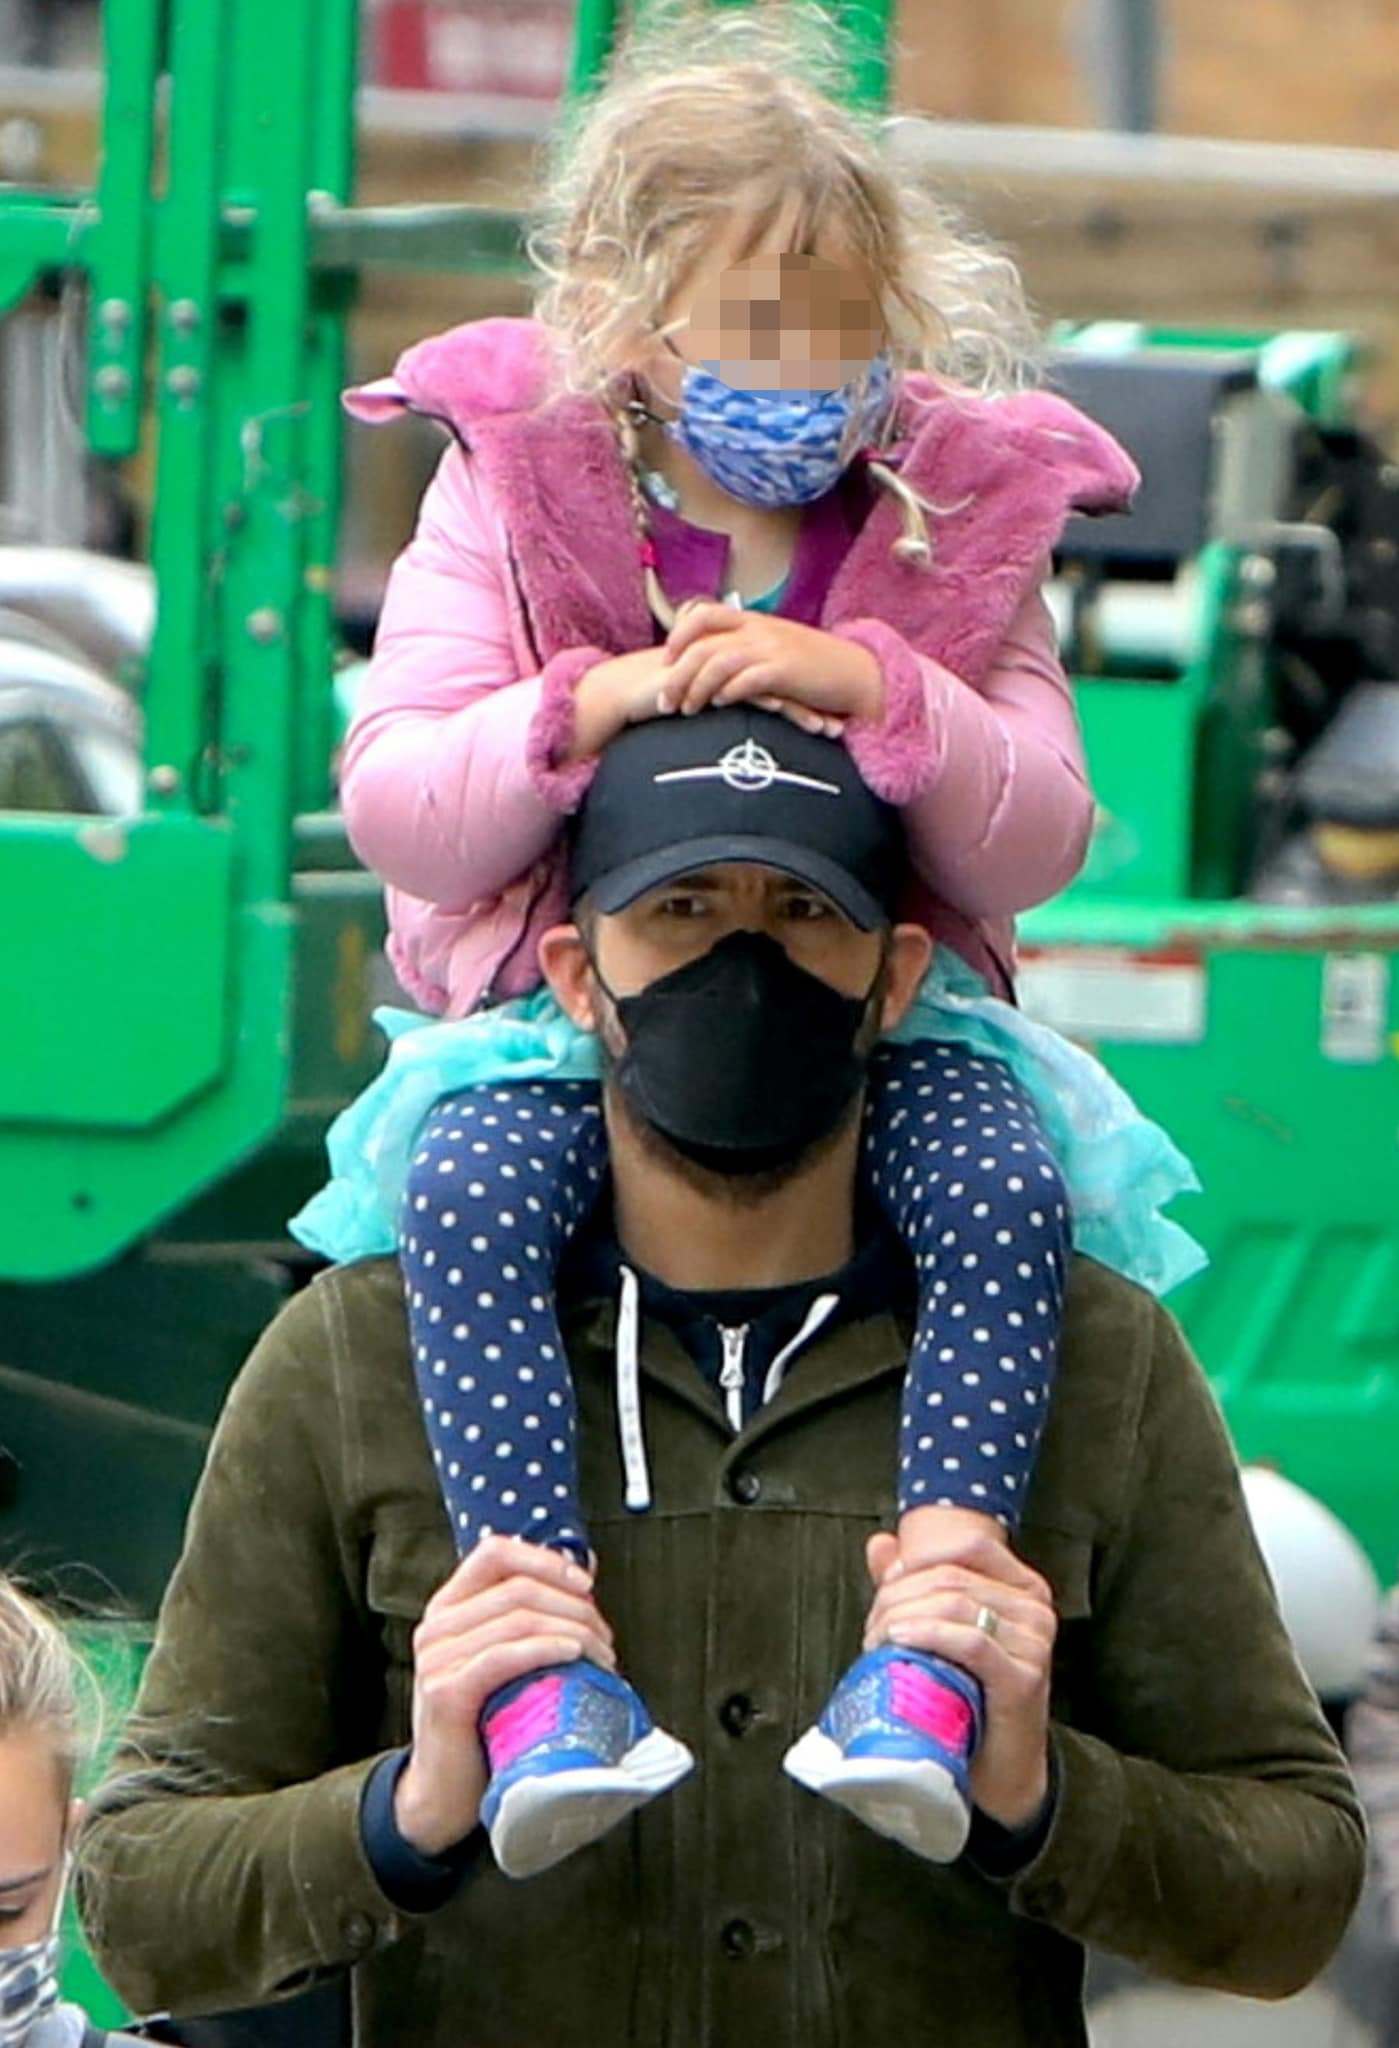 Ryan Reynolds and Blake Lively's second daughter, Inez, looks cute in her pink jacket and polka dot leggings